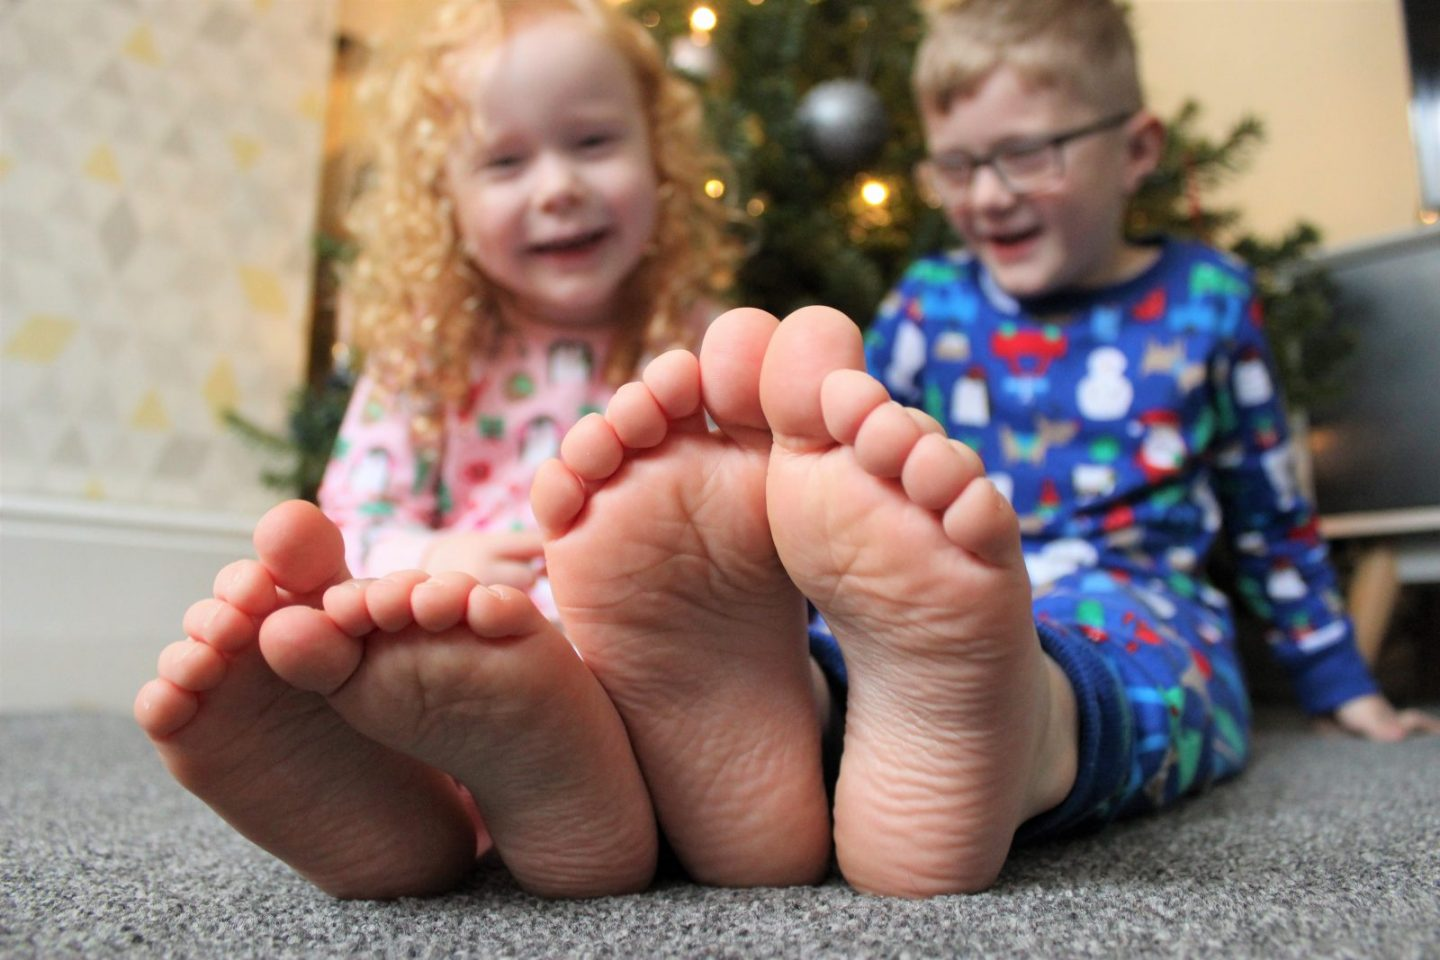 THE FOUR GIFT RULE | CHILDREN'S CHRISTMAS GIFT IDEAS